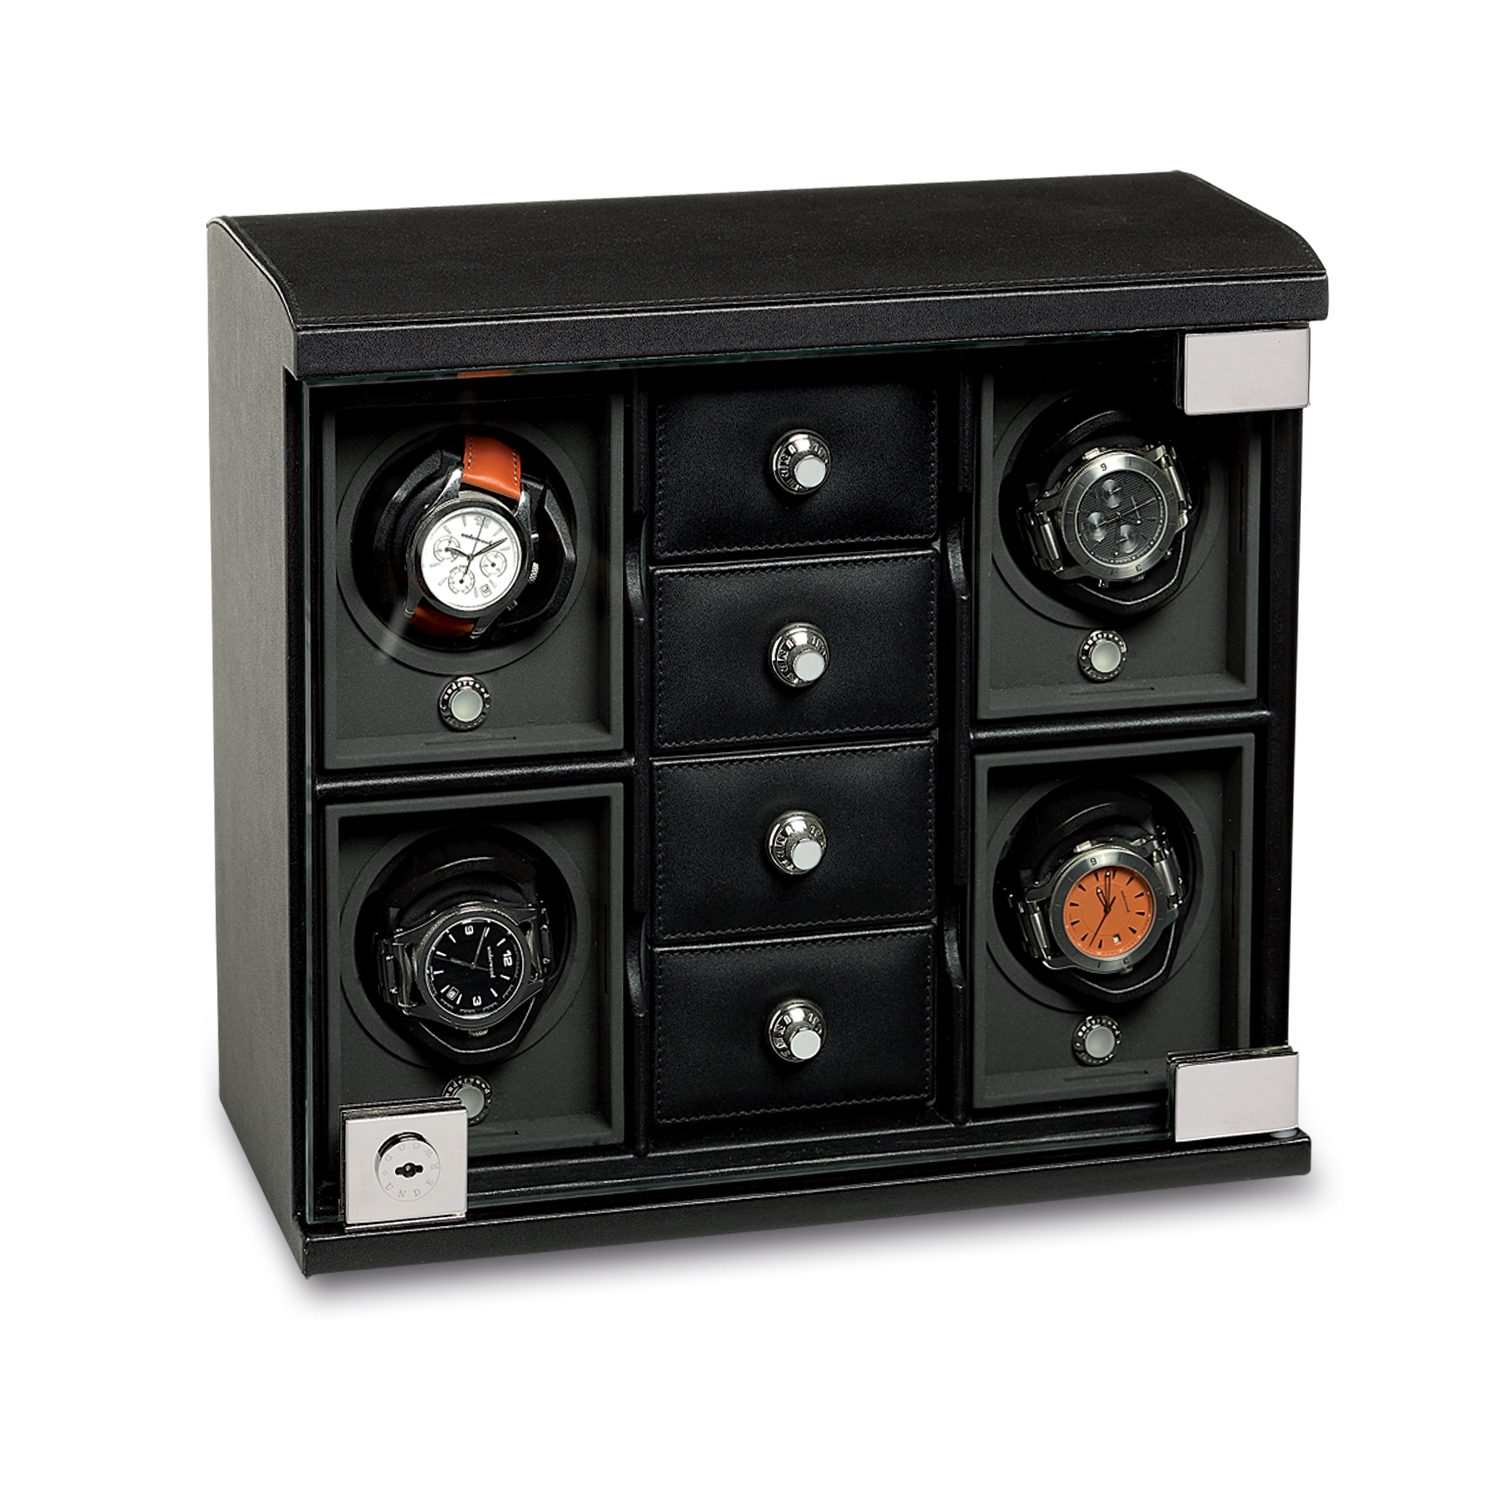 Watch-Winder-for-4-watches-with-trays